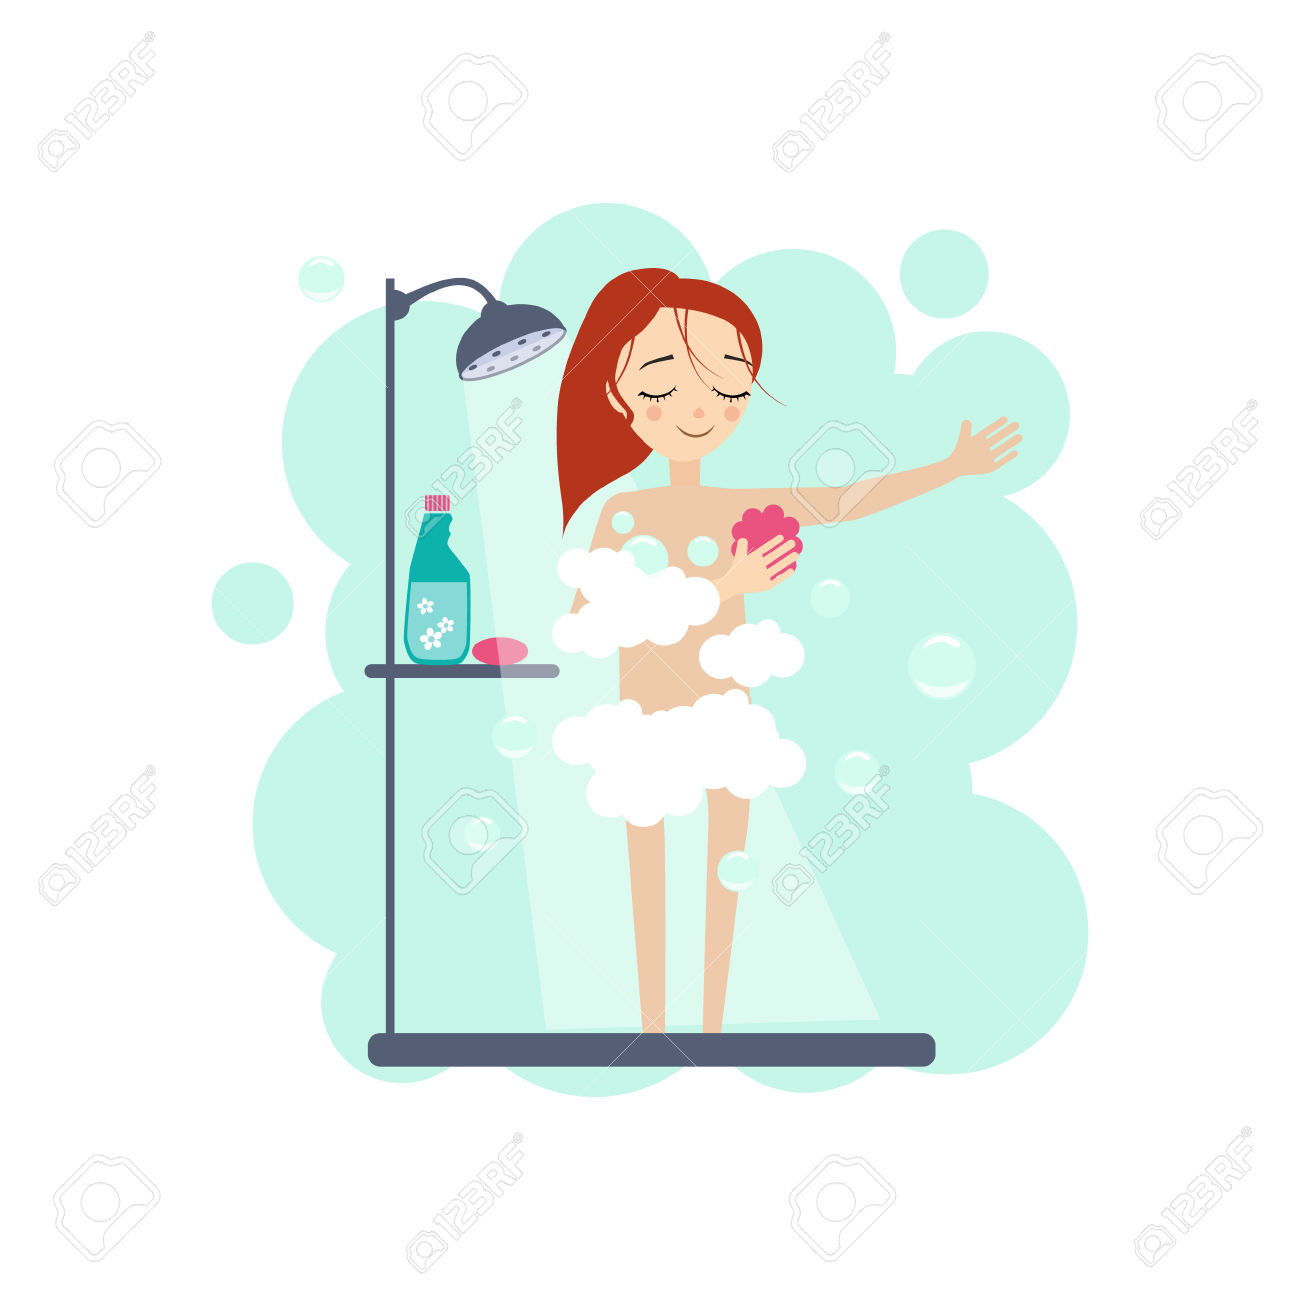 Taking A Shower. Daily Routine Activities Of Women. Colourful.